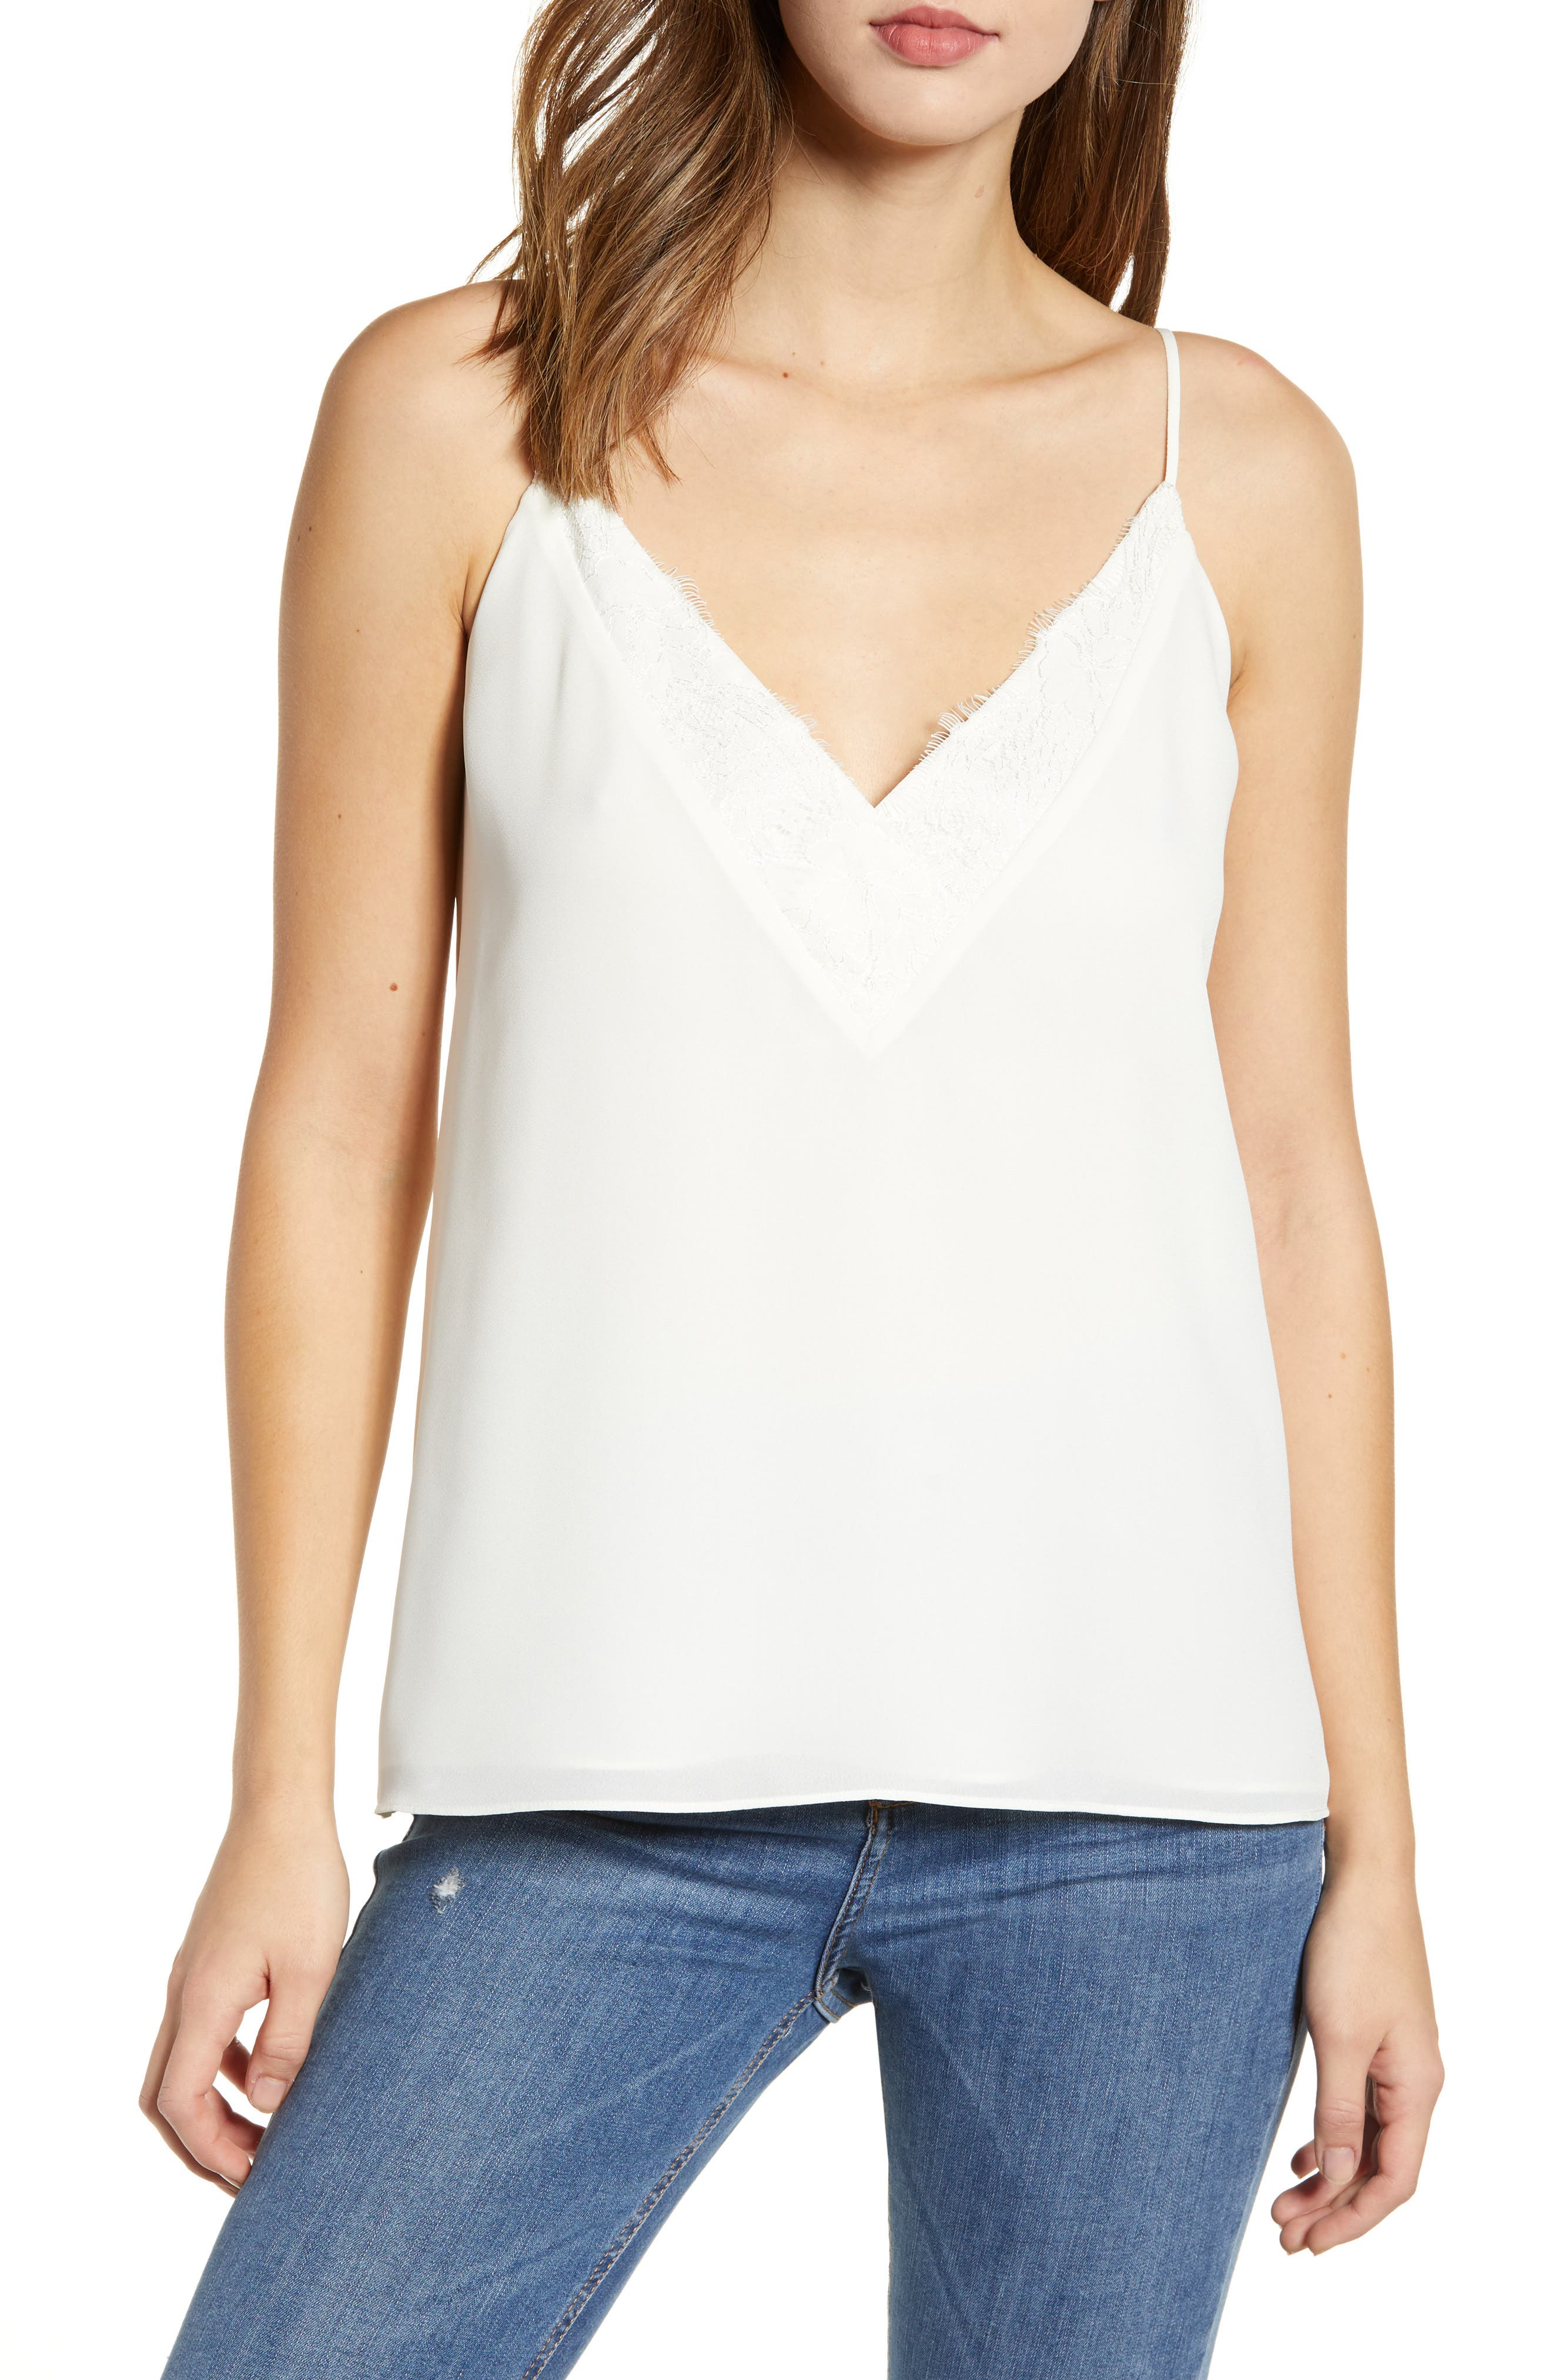 Socialite Lace Trim Camisole Top, Ivory